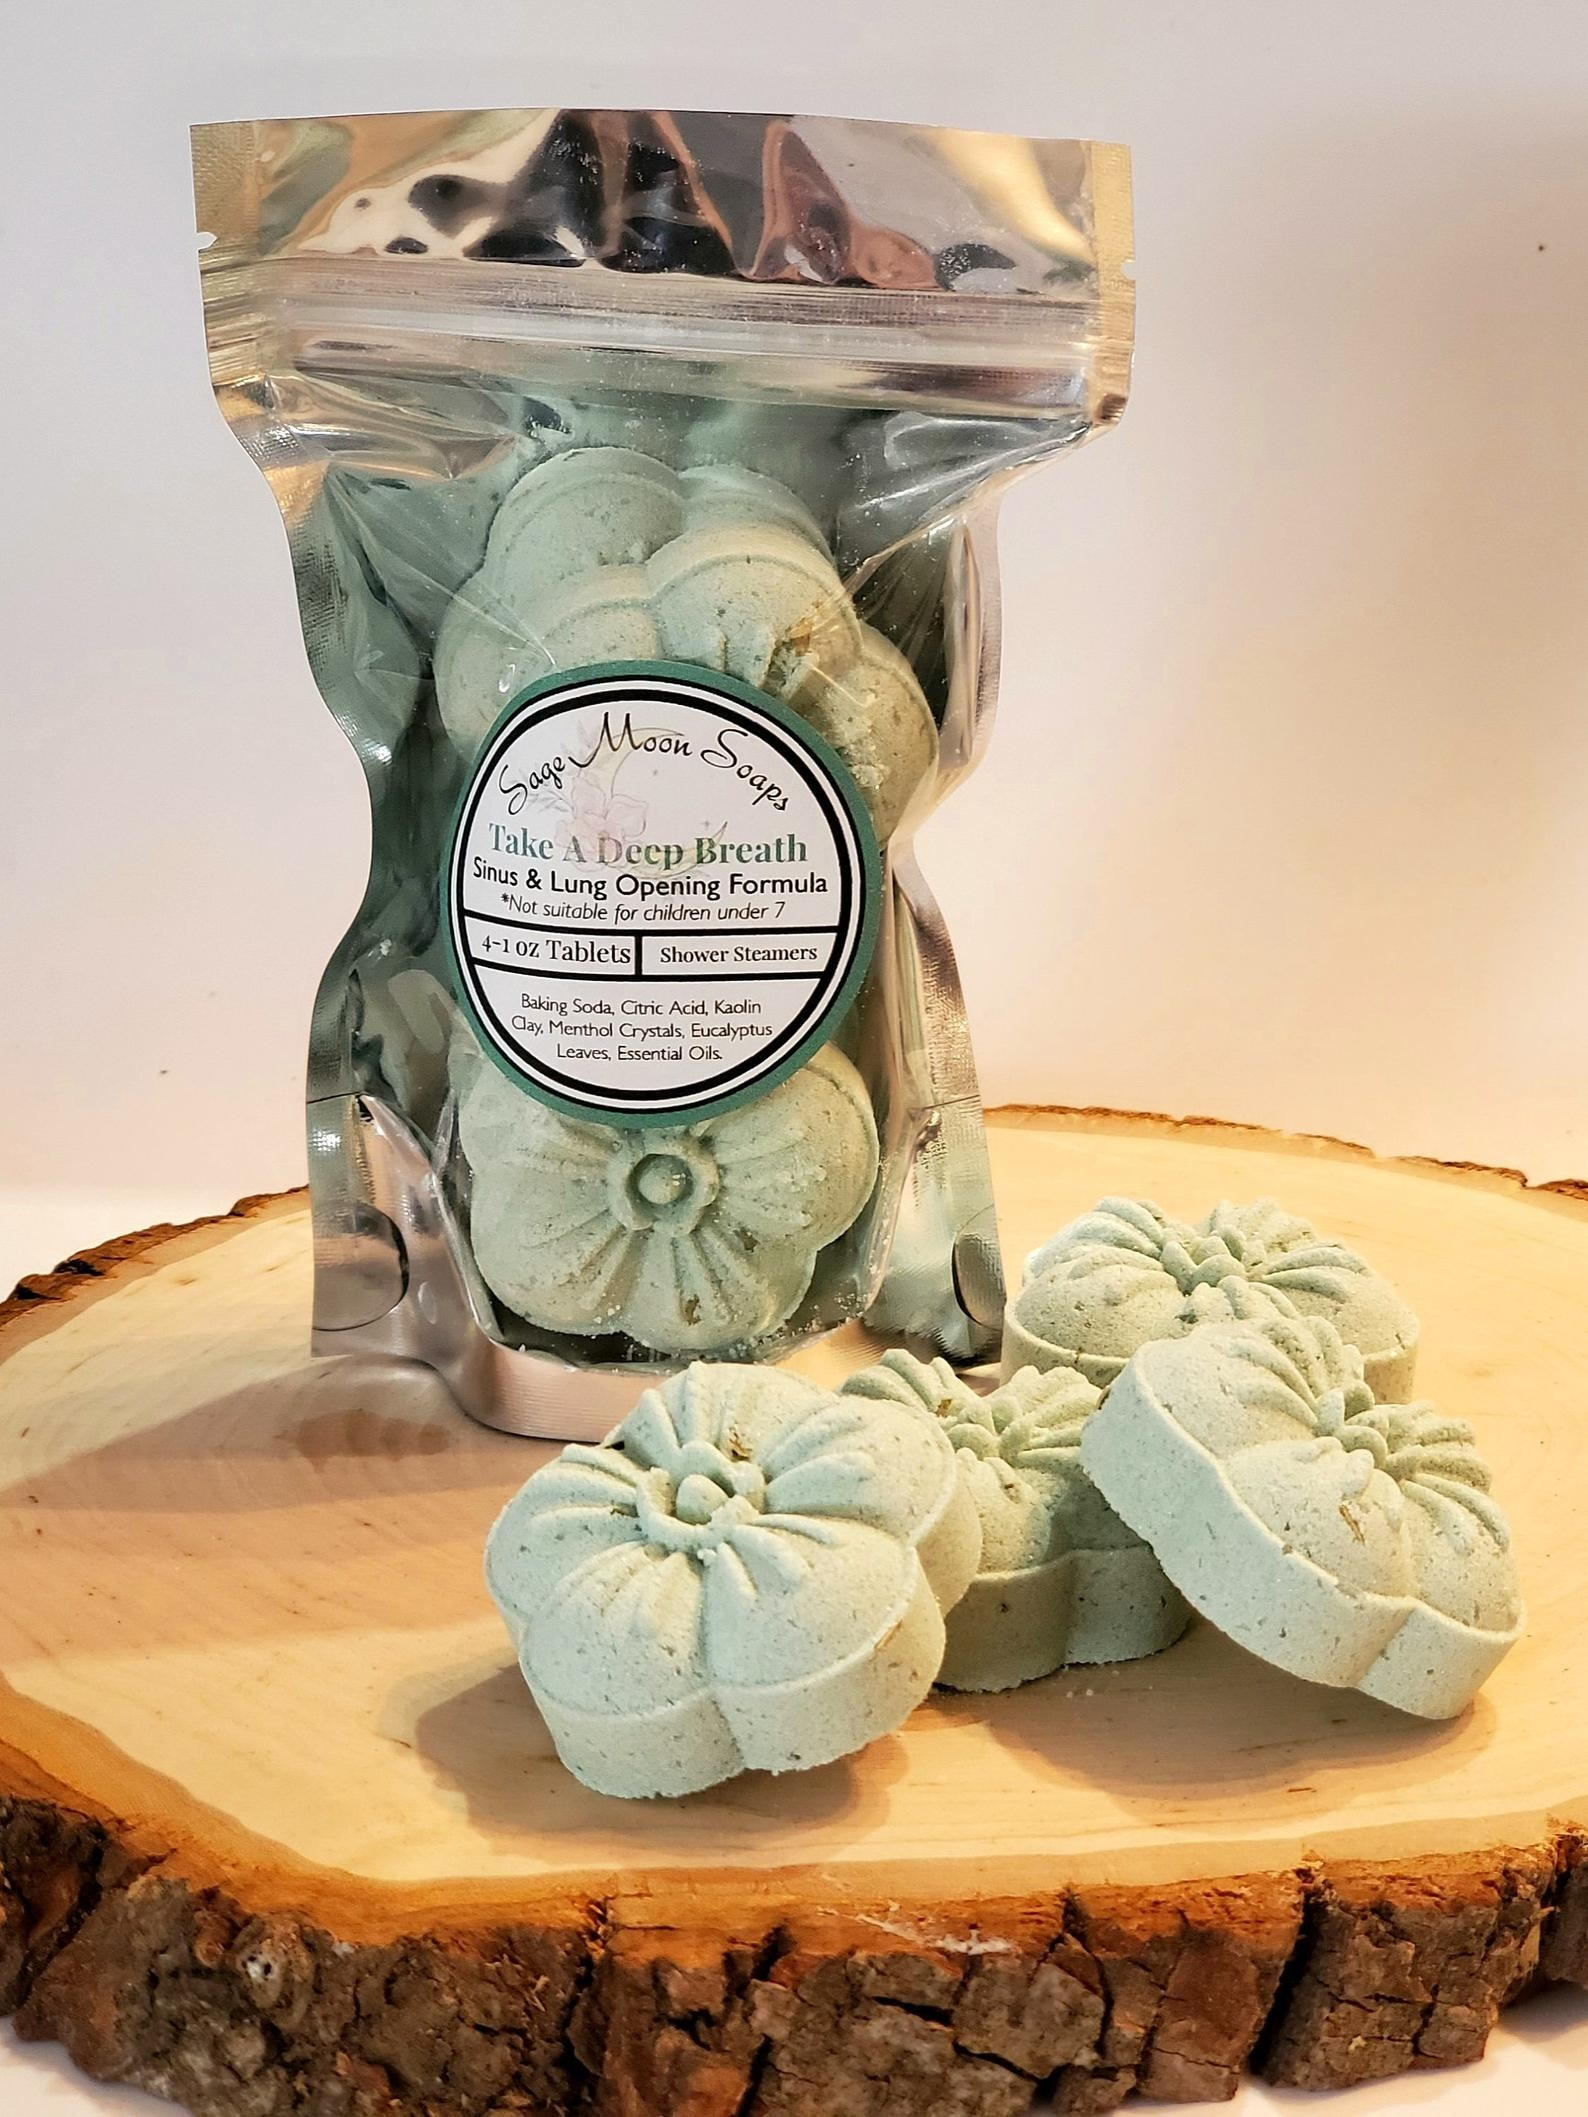 The green flower-shaped tablets, which come in a pouch